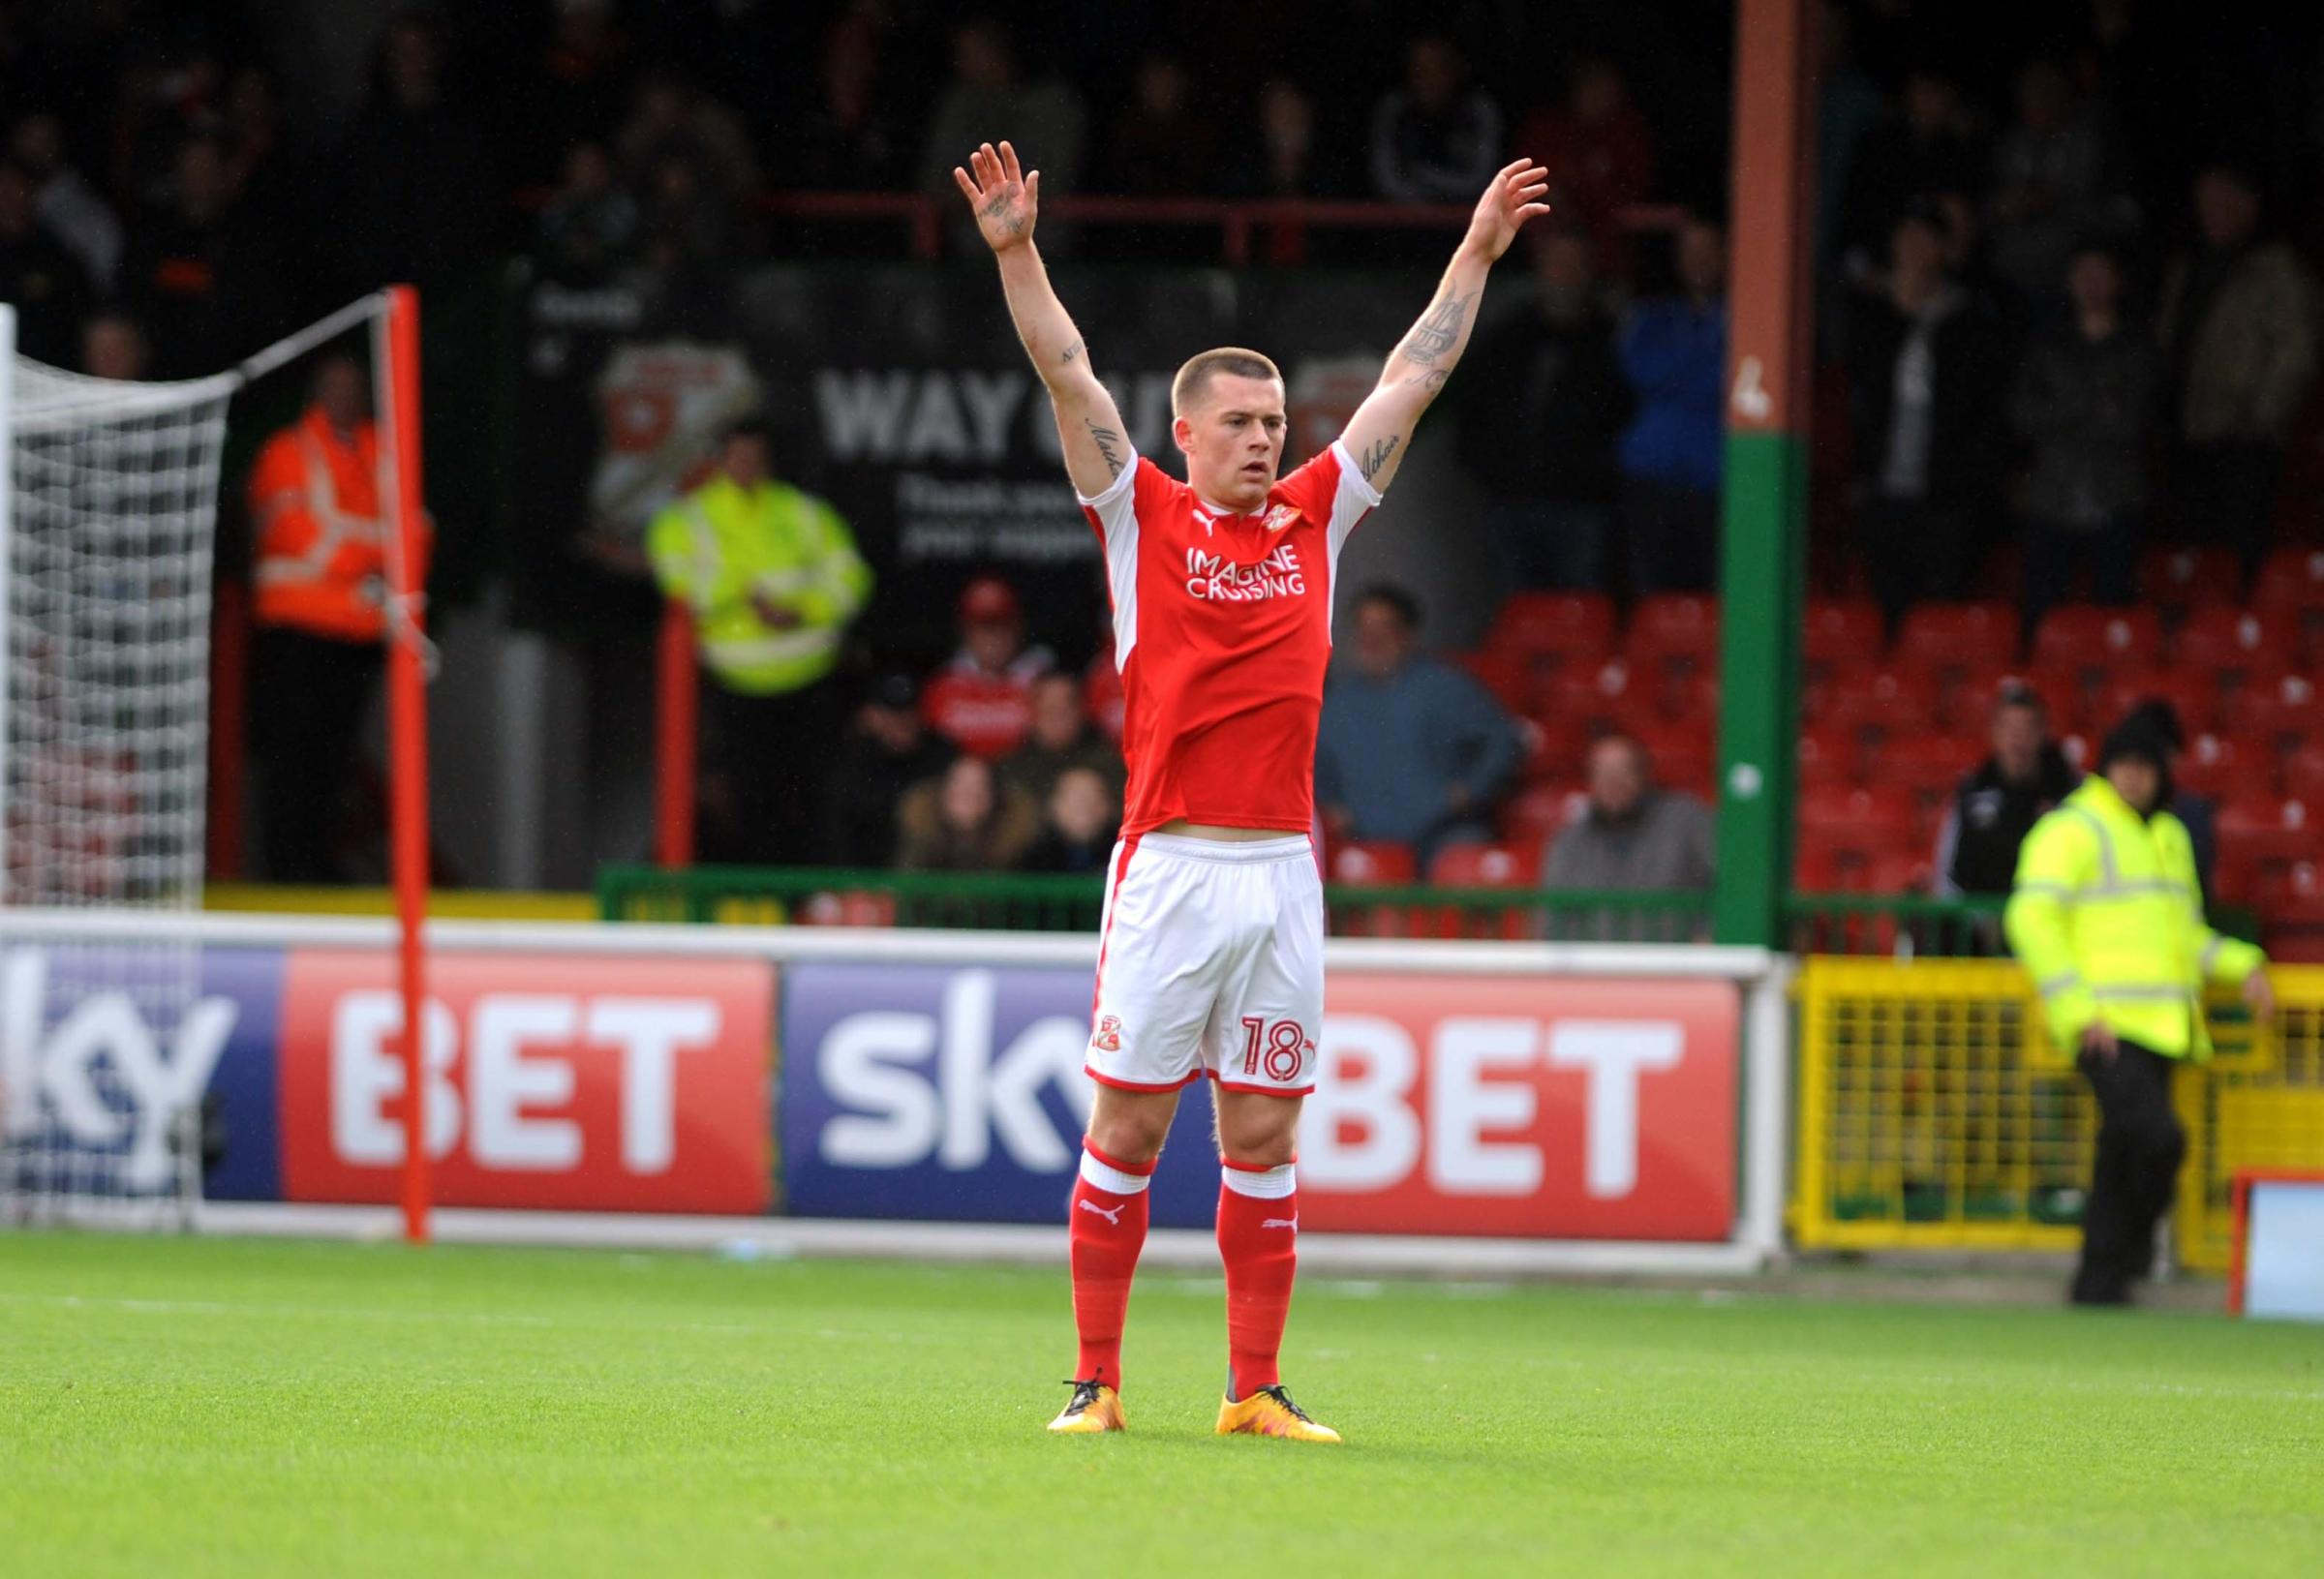 Donal McDermott suffered an injury for Swindon Town against Bristol Rovers on Wednesday night